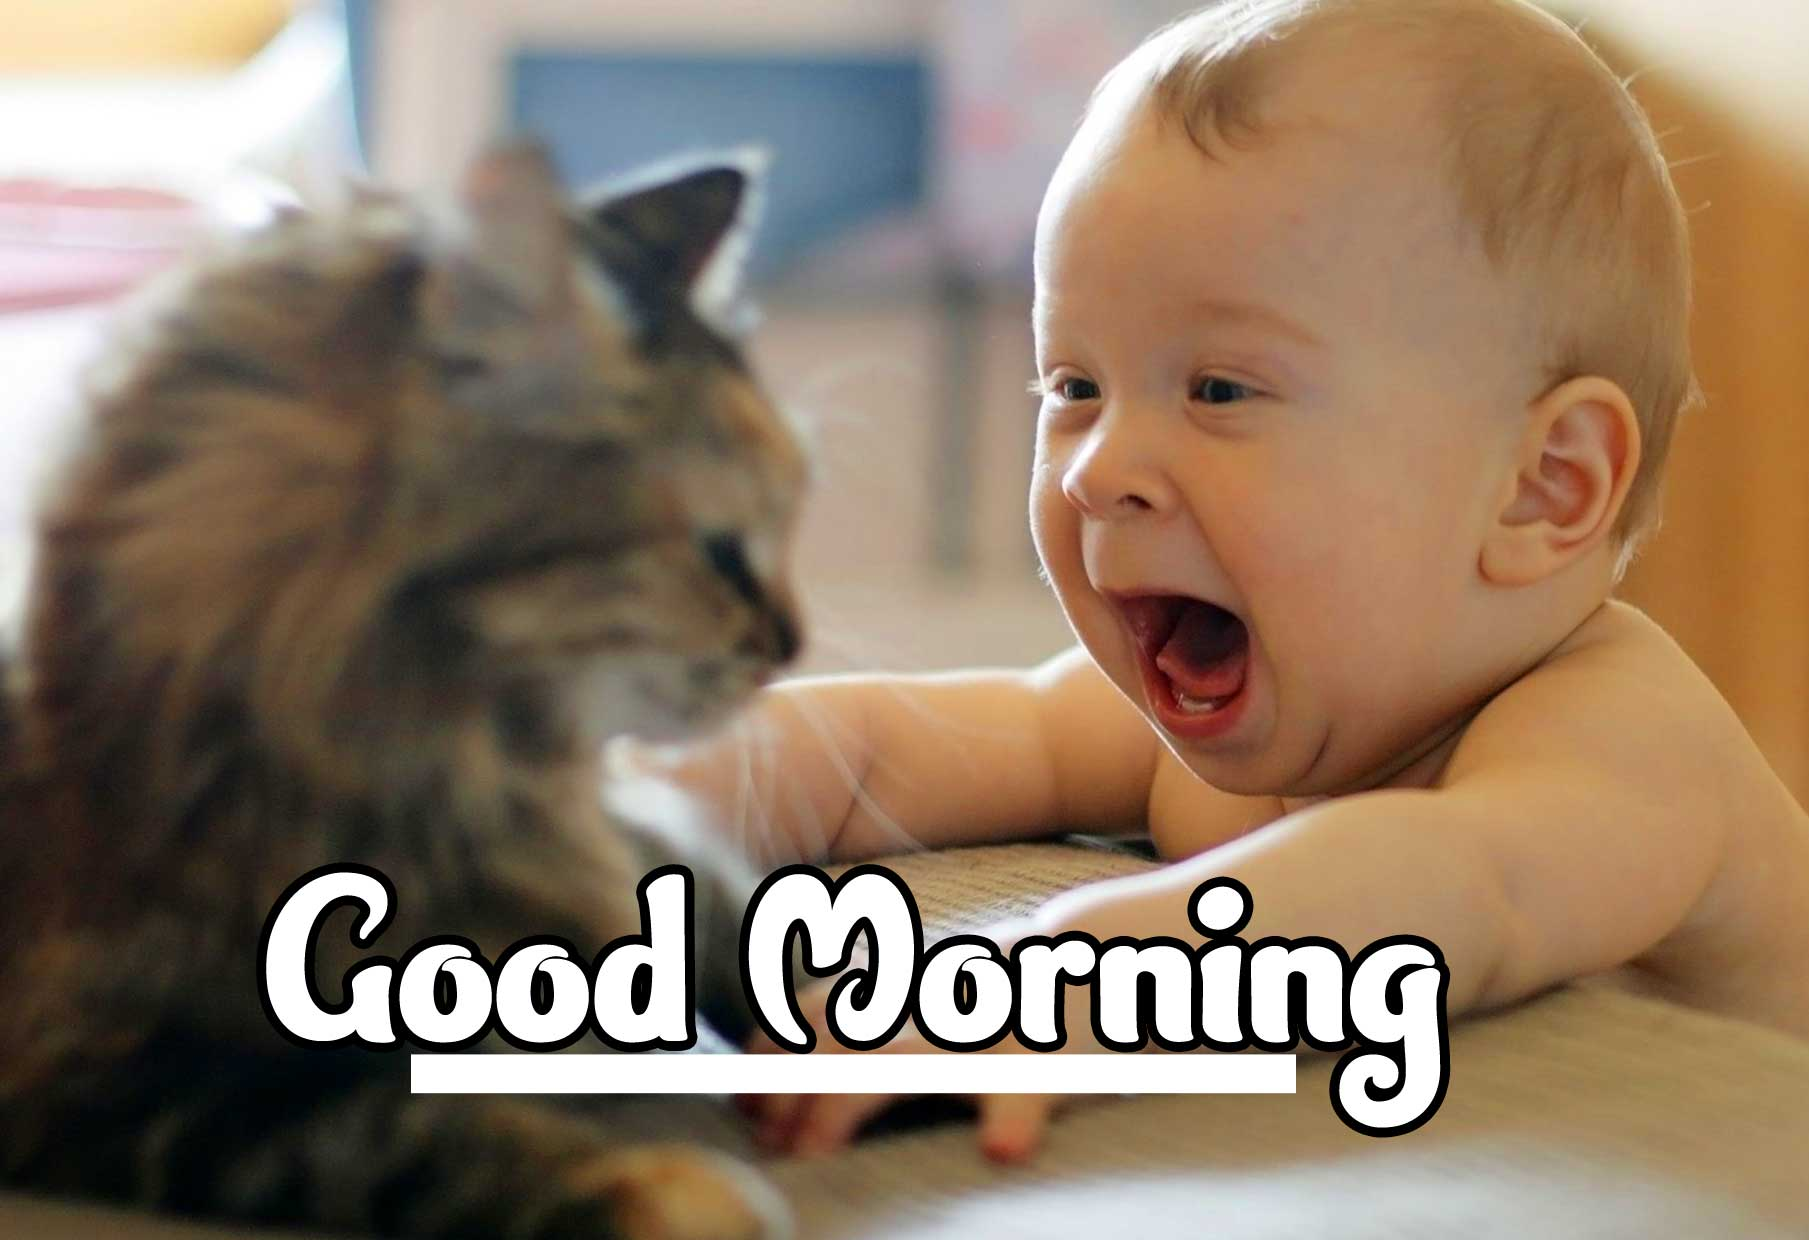 Cute Baby Boys & Girls Good Morning Images Pics Free Download